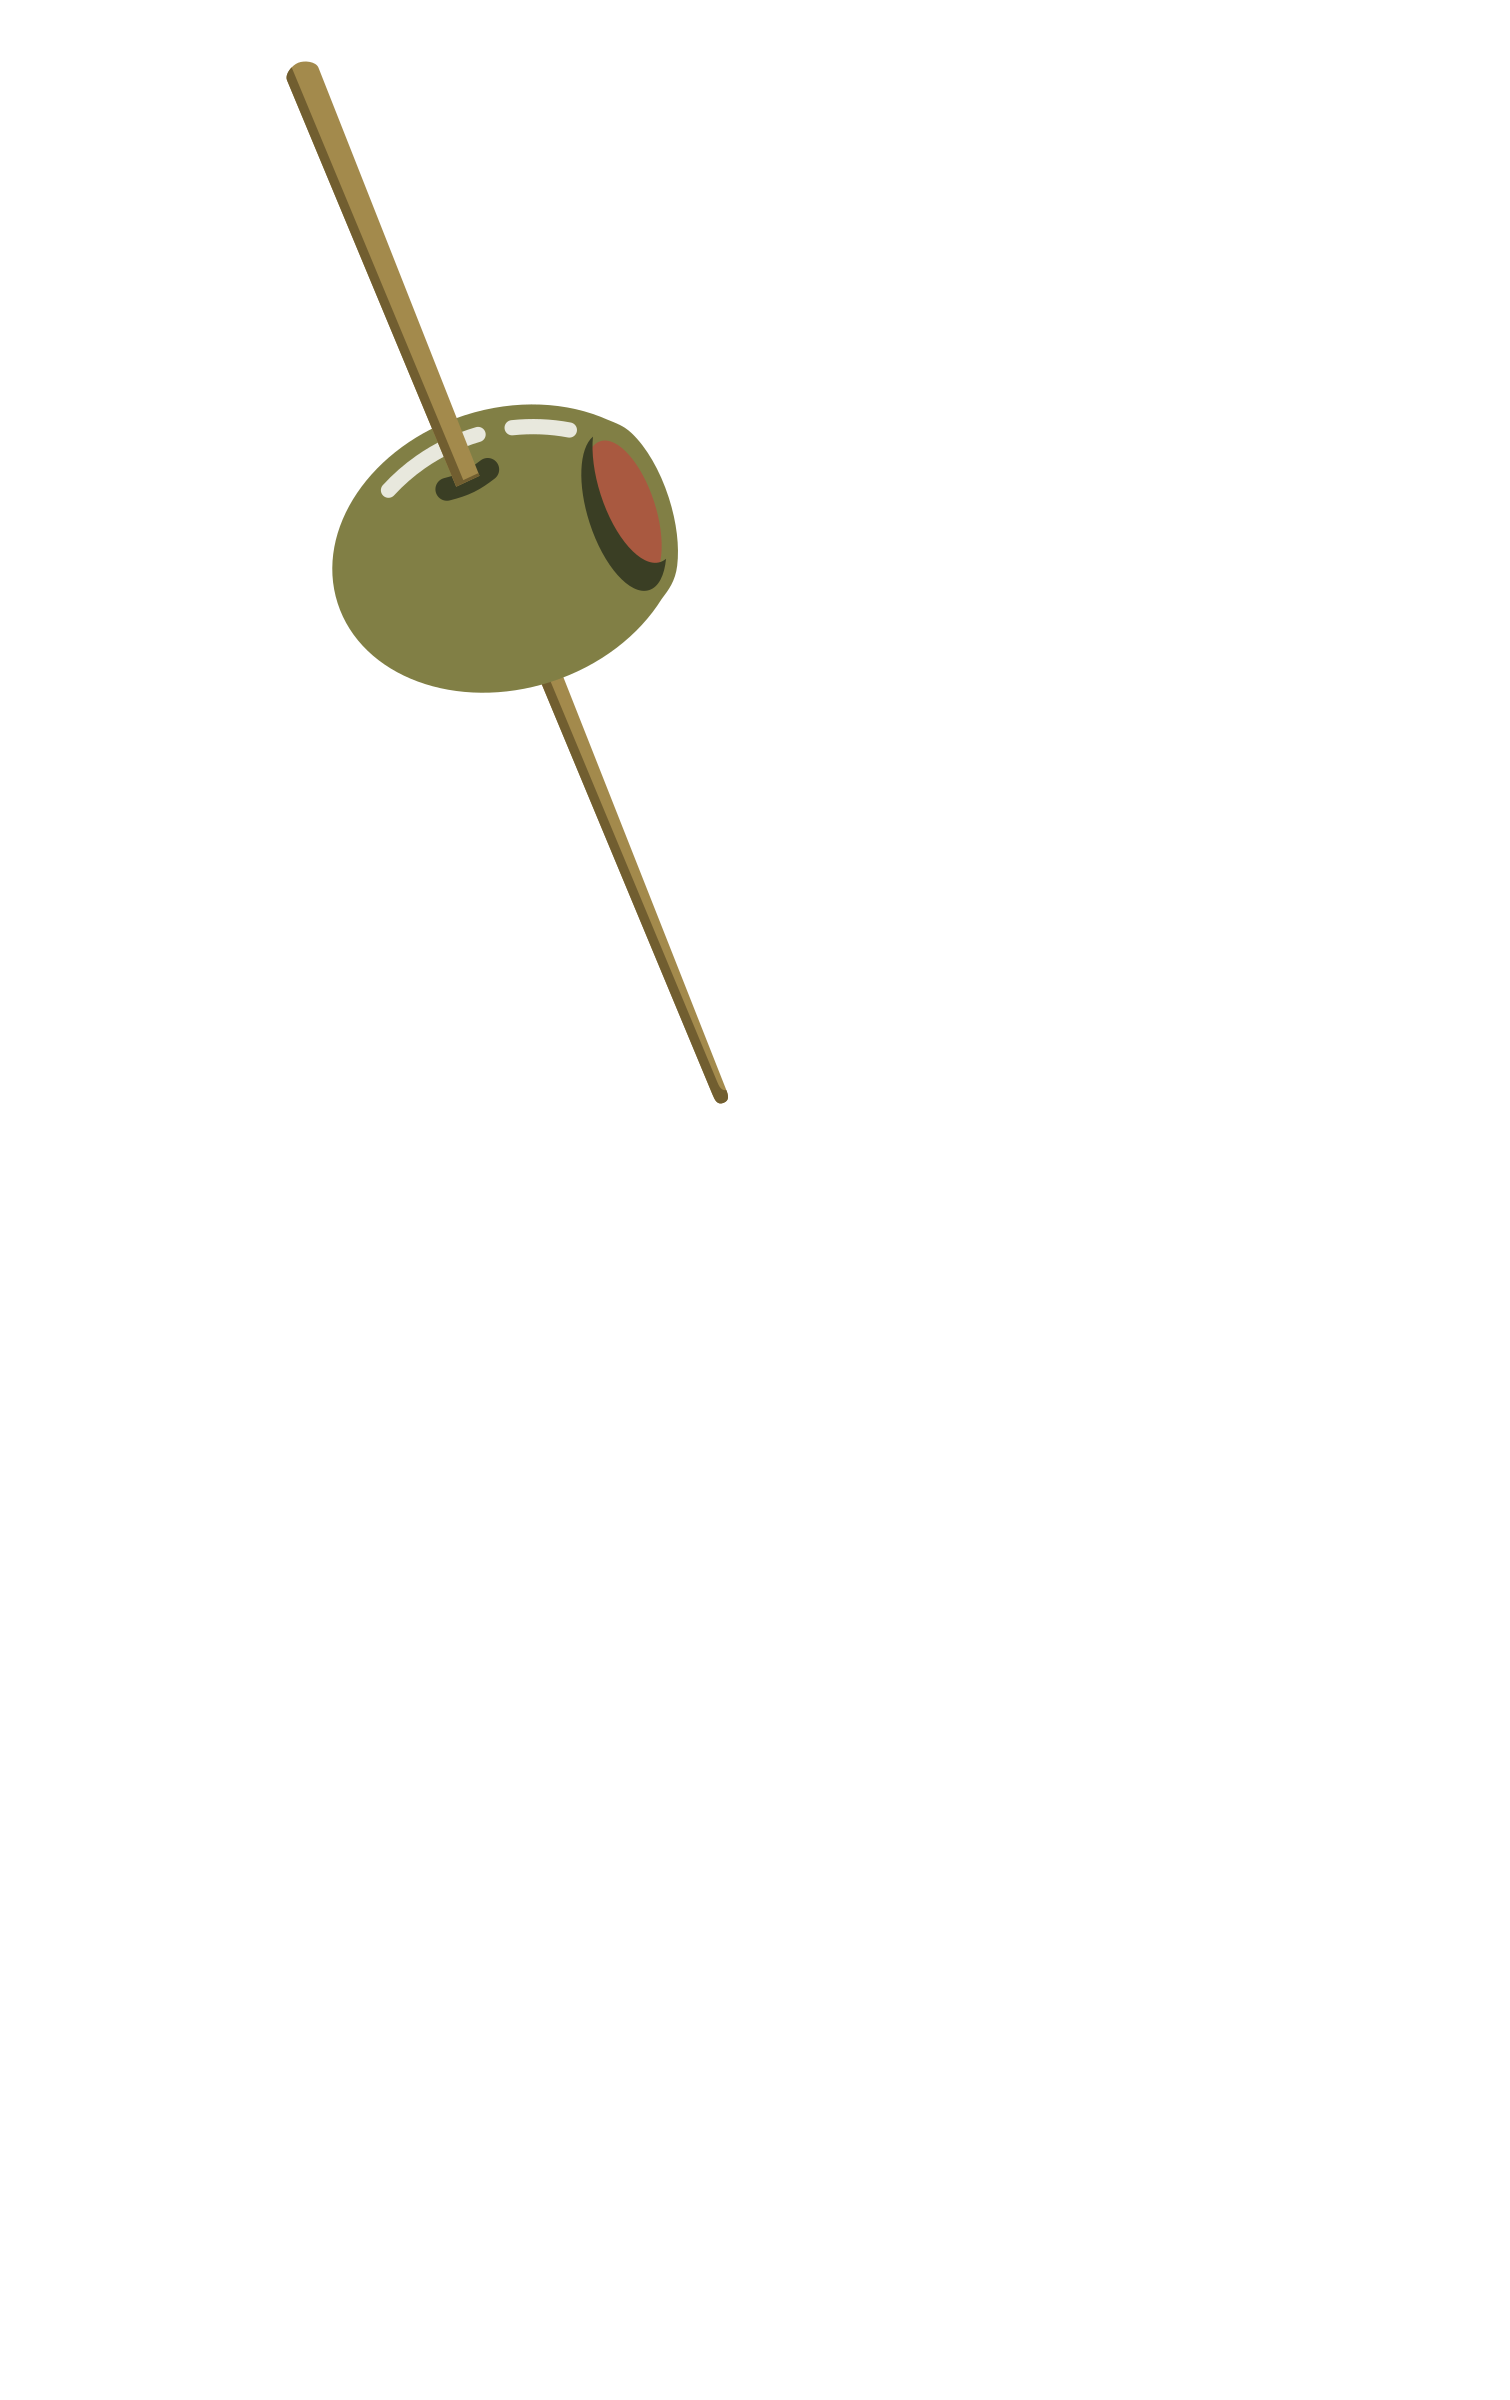 Olive on a toothpick by PrinterKiller